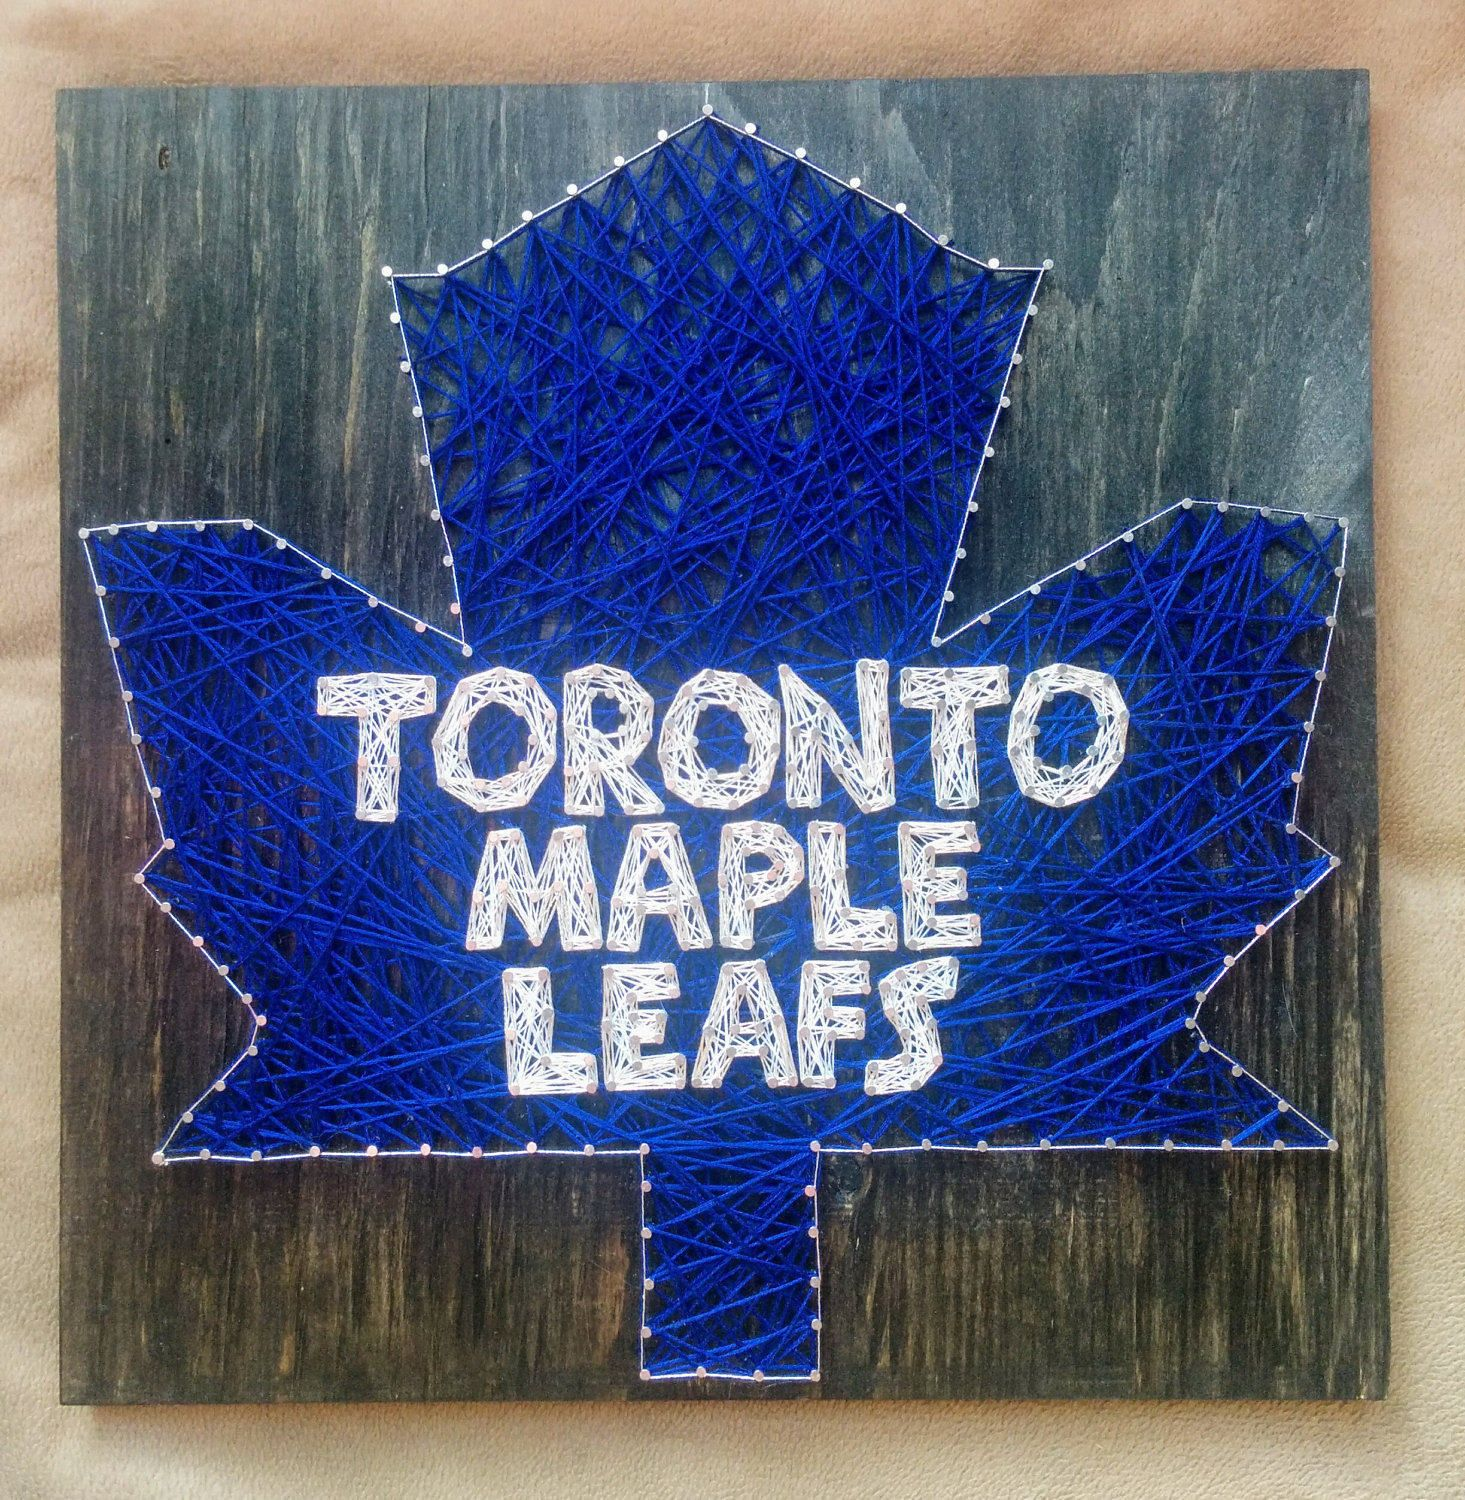 Toronto Maple Leafs Logo By Sayitwithstringart On Etsy Toronto Maple Leafs Toronto Maple Leafs Logo Maple Leafs